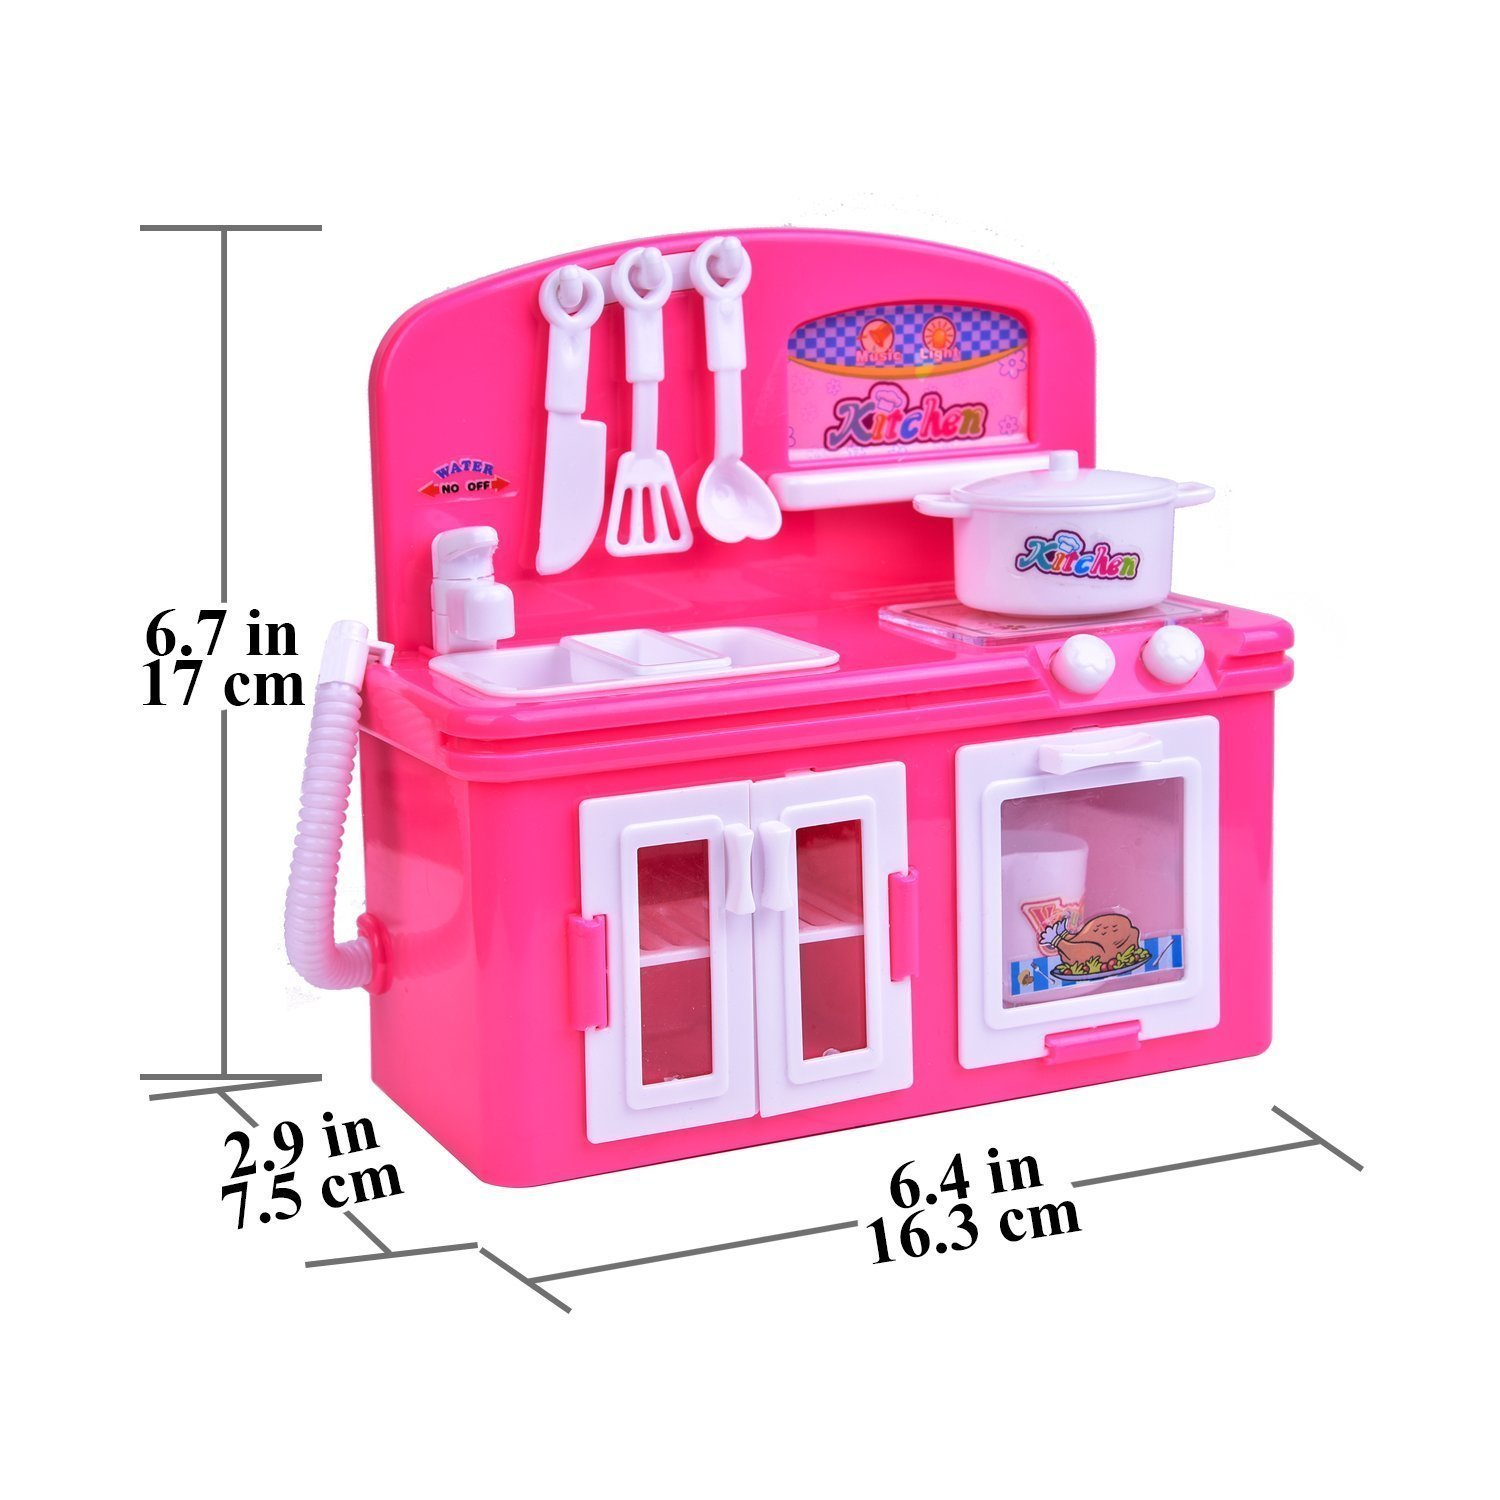 19 PCs Kitchen Appliance Toys with Kitchen, Refrigerator, Pot and Tableware, Pretend Play Set for Kids, Play Kitchen Appliance by FUN LITTLE TOYS (Image #2)